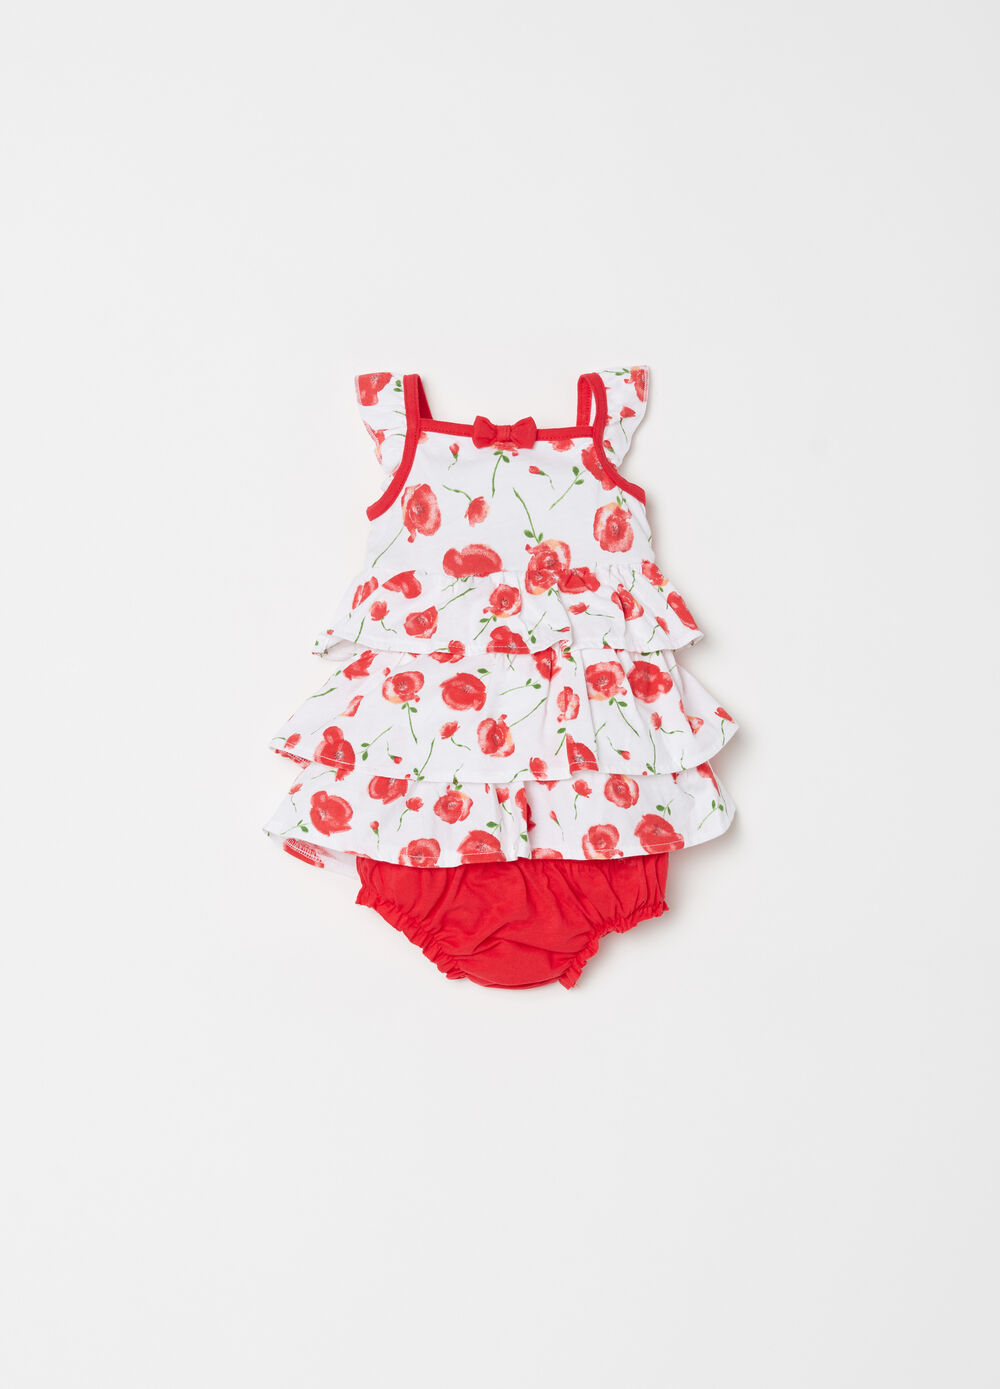 Dress set with floral flounces and briefs